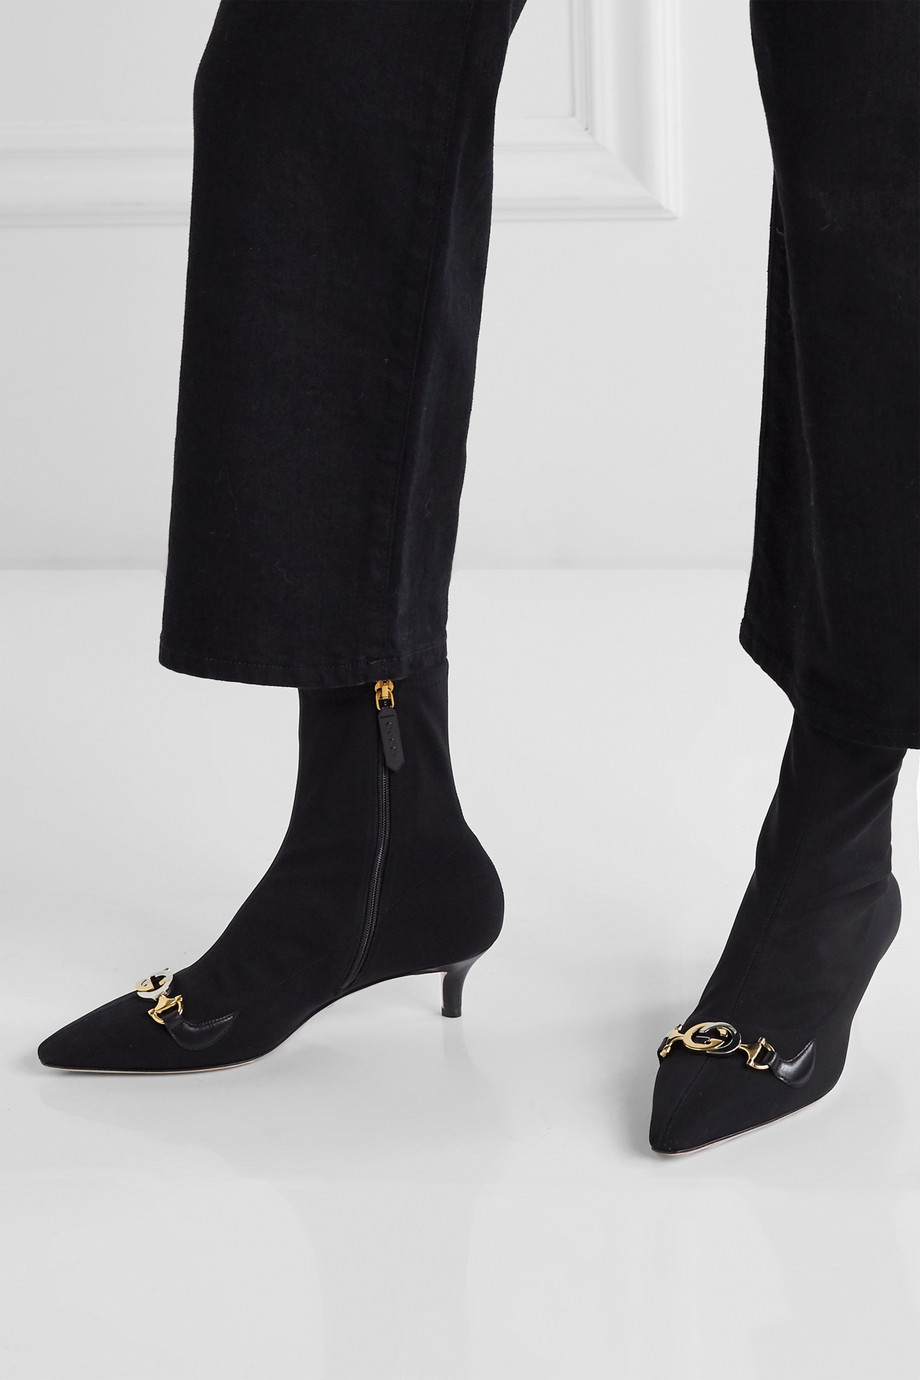 Gucci Zumi logo-embellished leather-trimmed stretch-knit sock boots